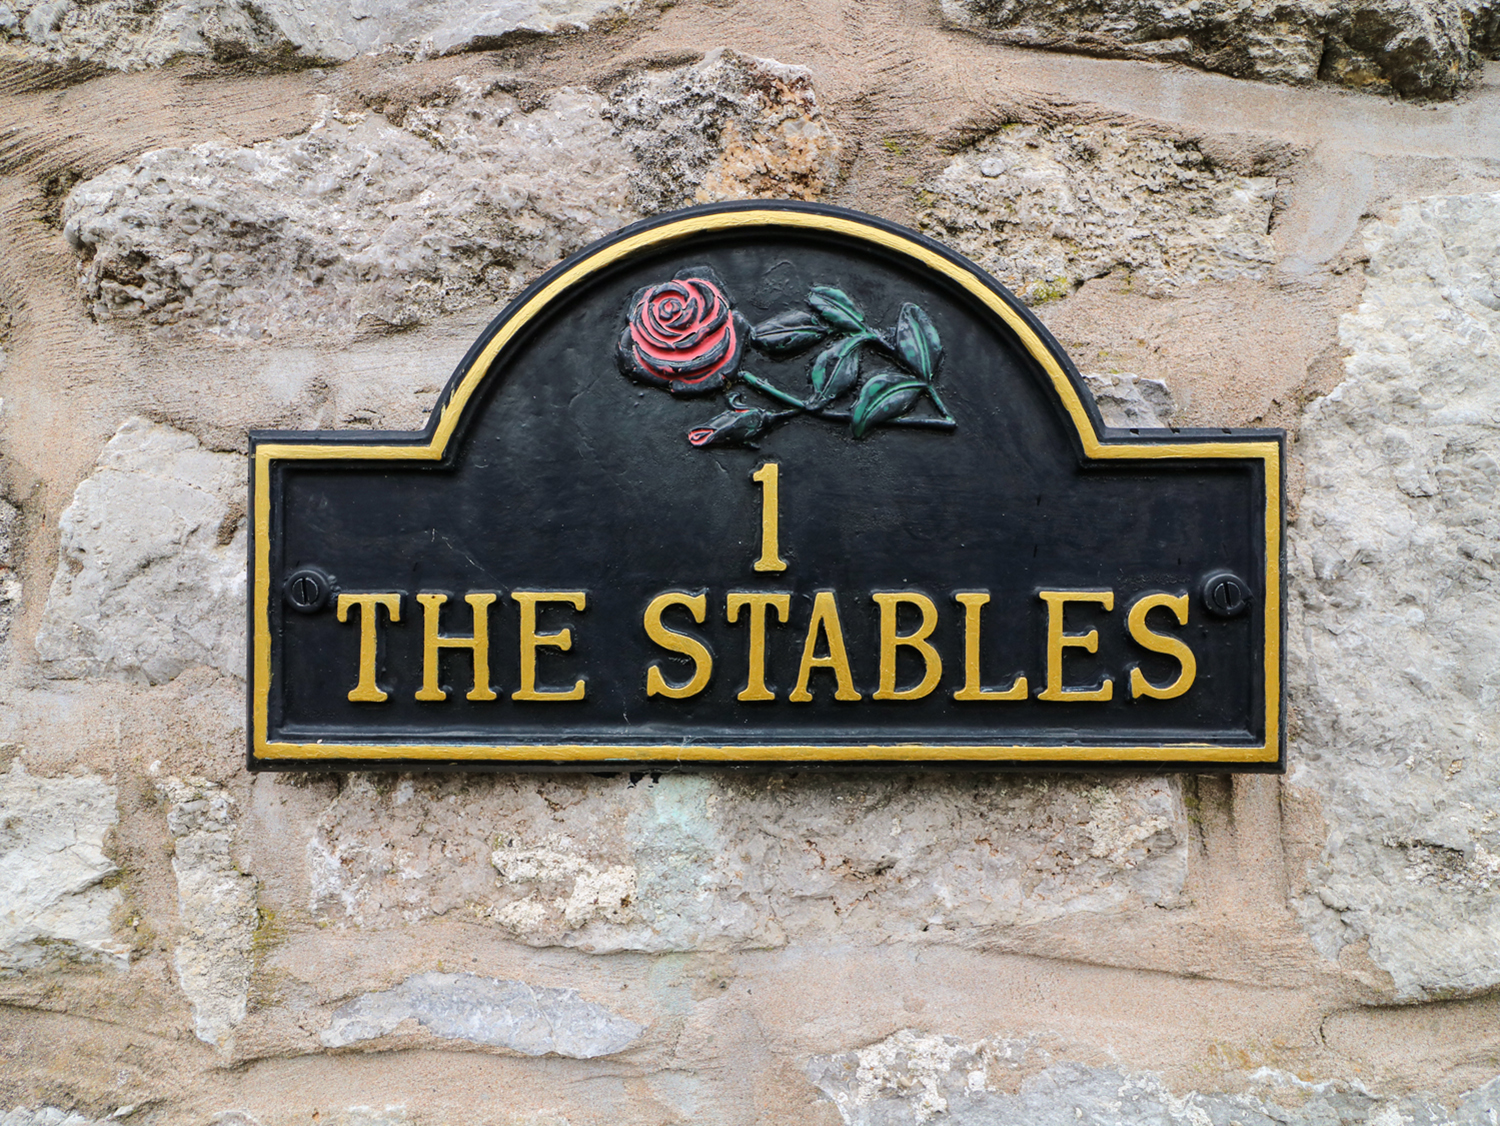 1 The Stables